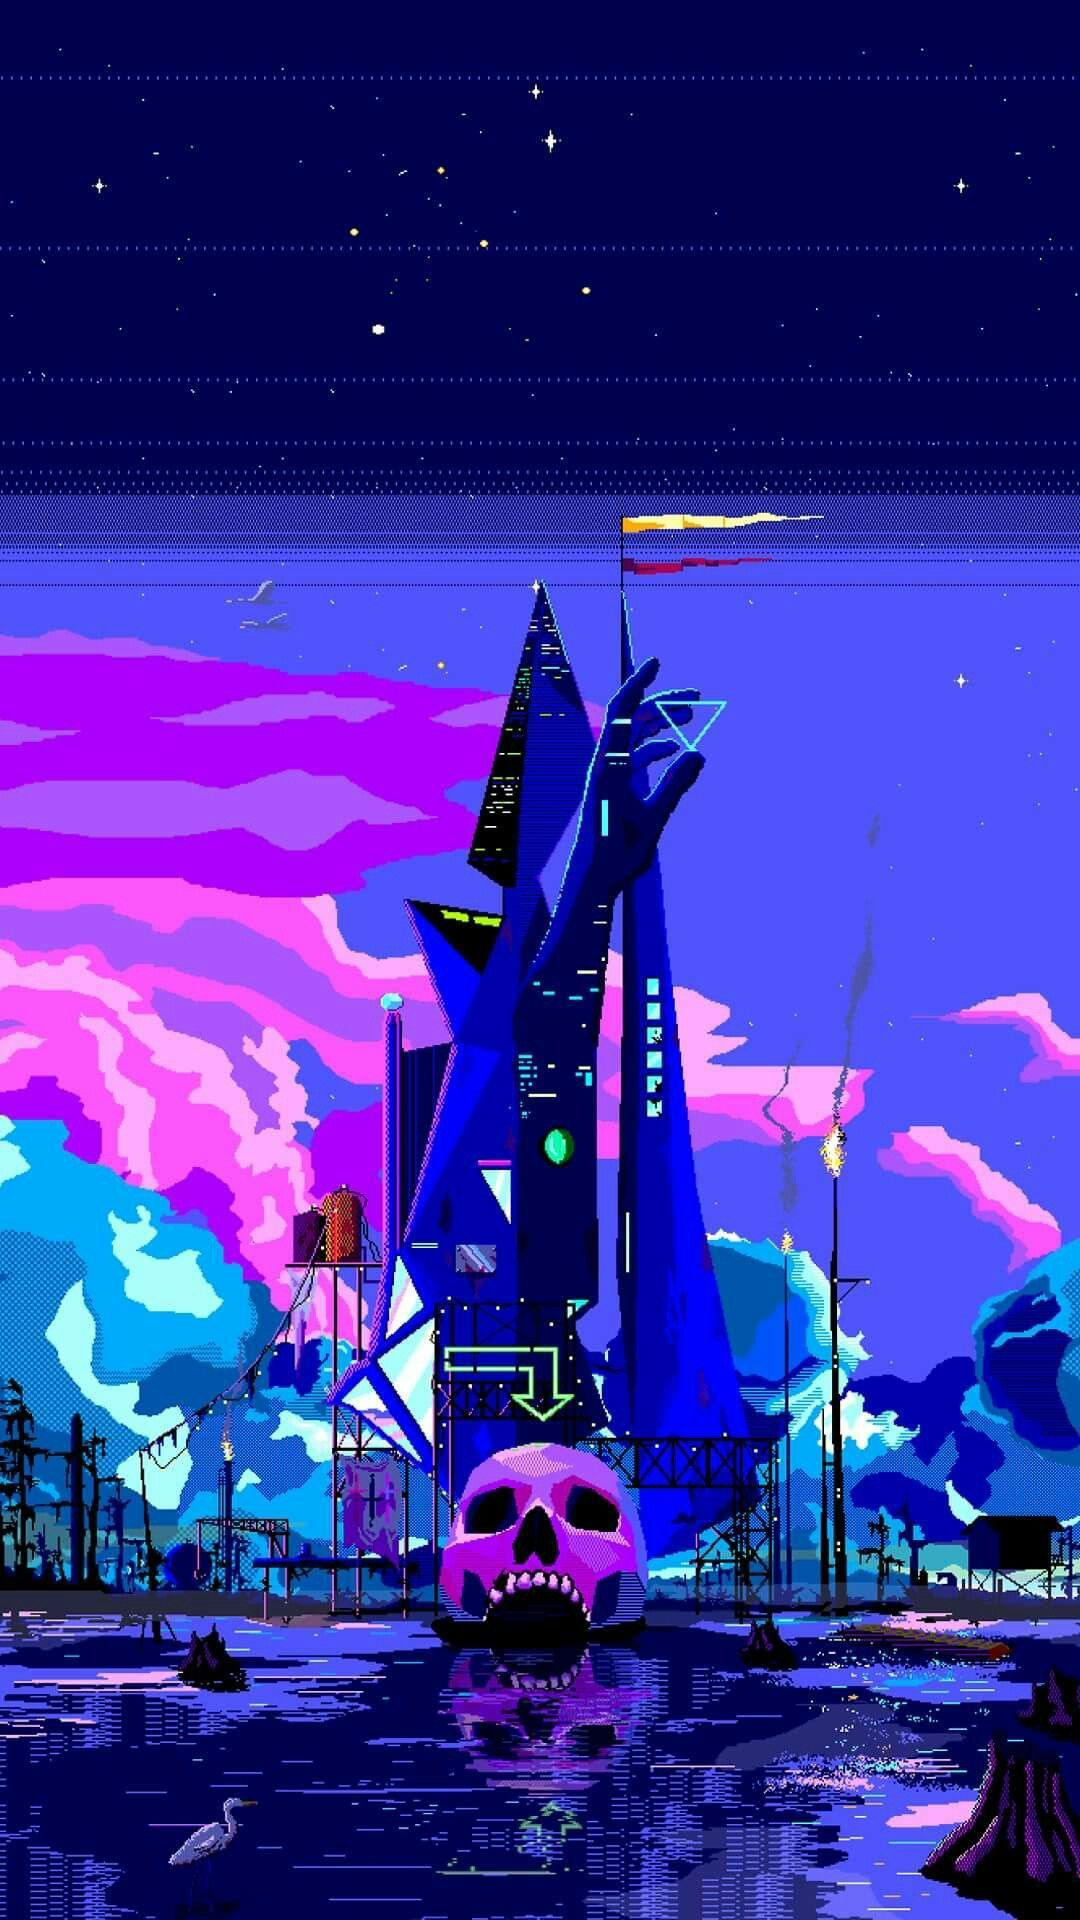 Art Juice Wrld Wallpaper In 2020 Vaporwave Wallpaper Aesthetic Wallpapers Anime Wallpaper